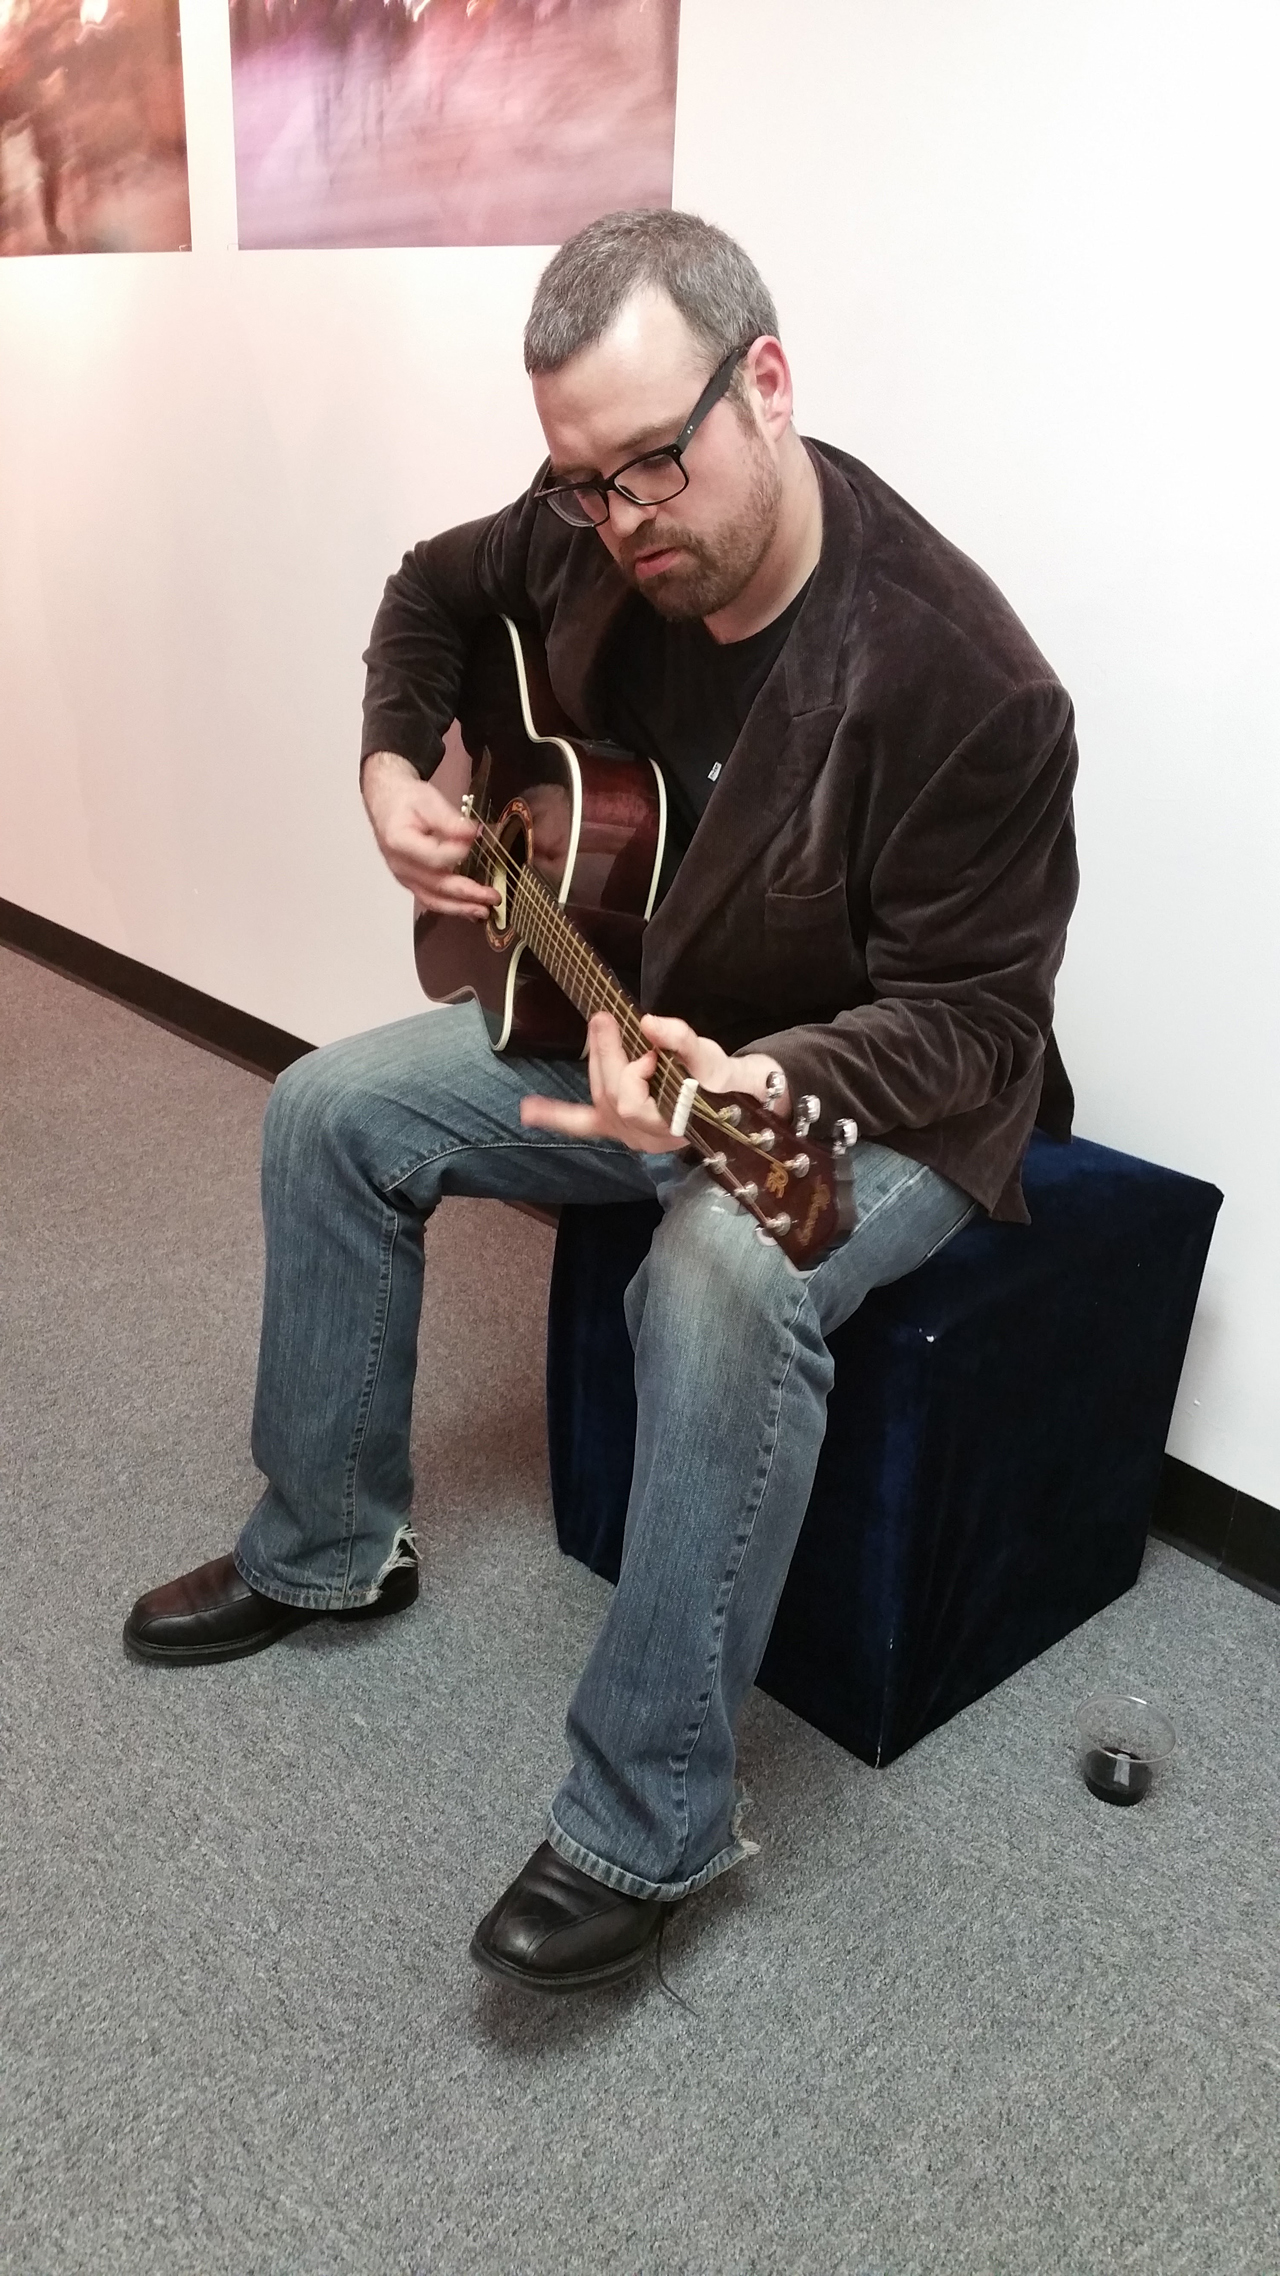 Michael DiFeo  of Jersey City provided a solo acoustic guitar performance and as well as an abstract photographic art exhibit.  Photo by Lenore Holz.